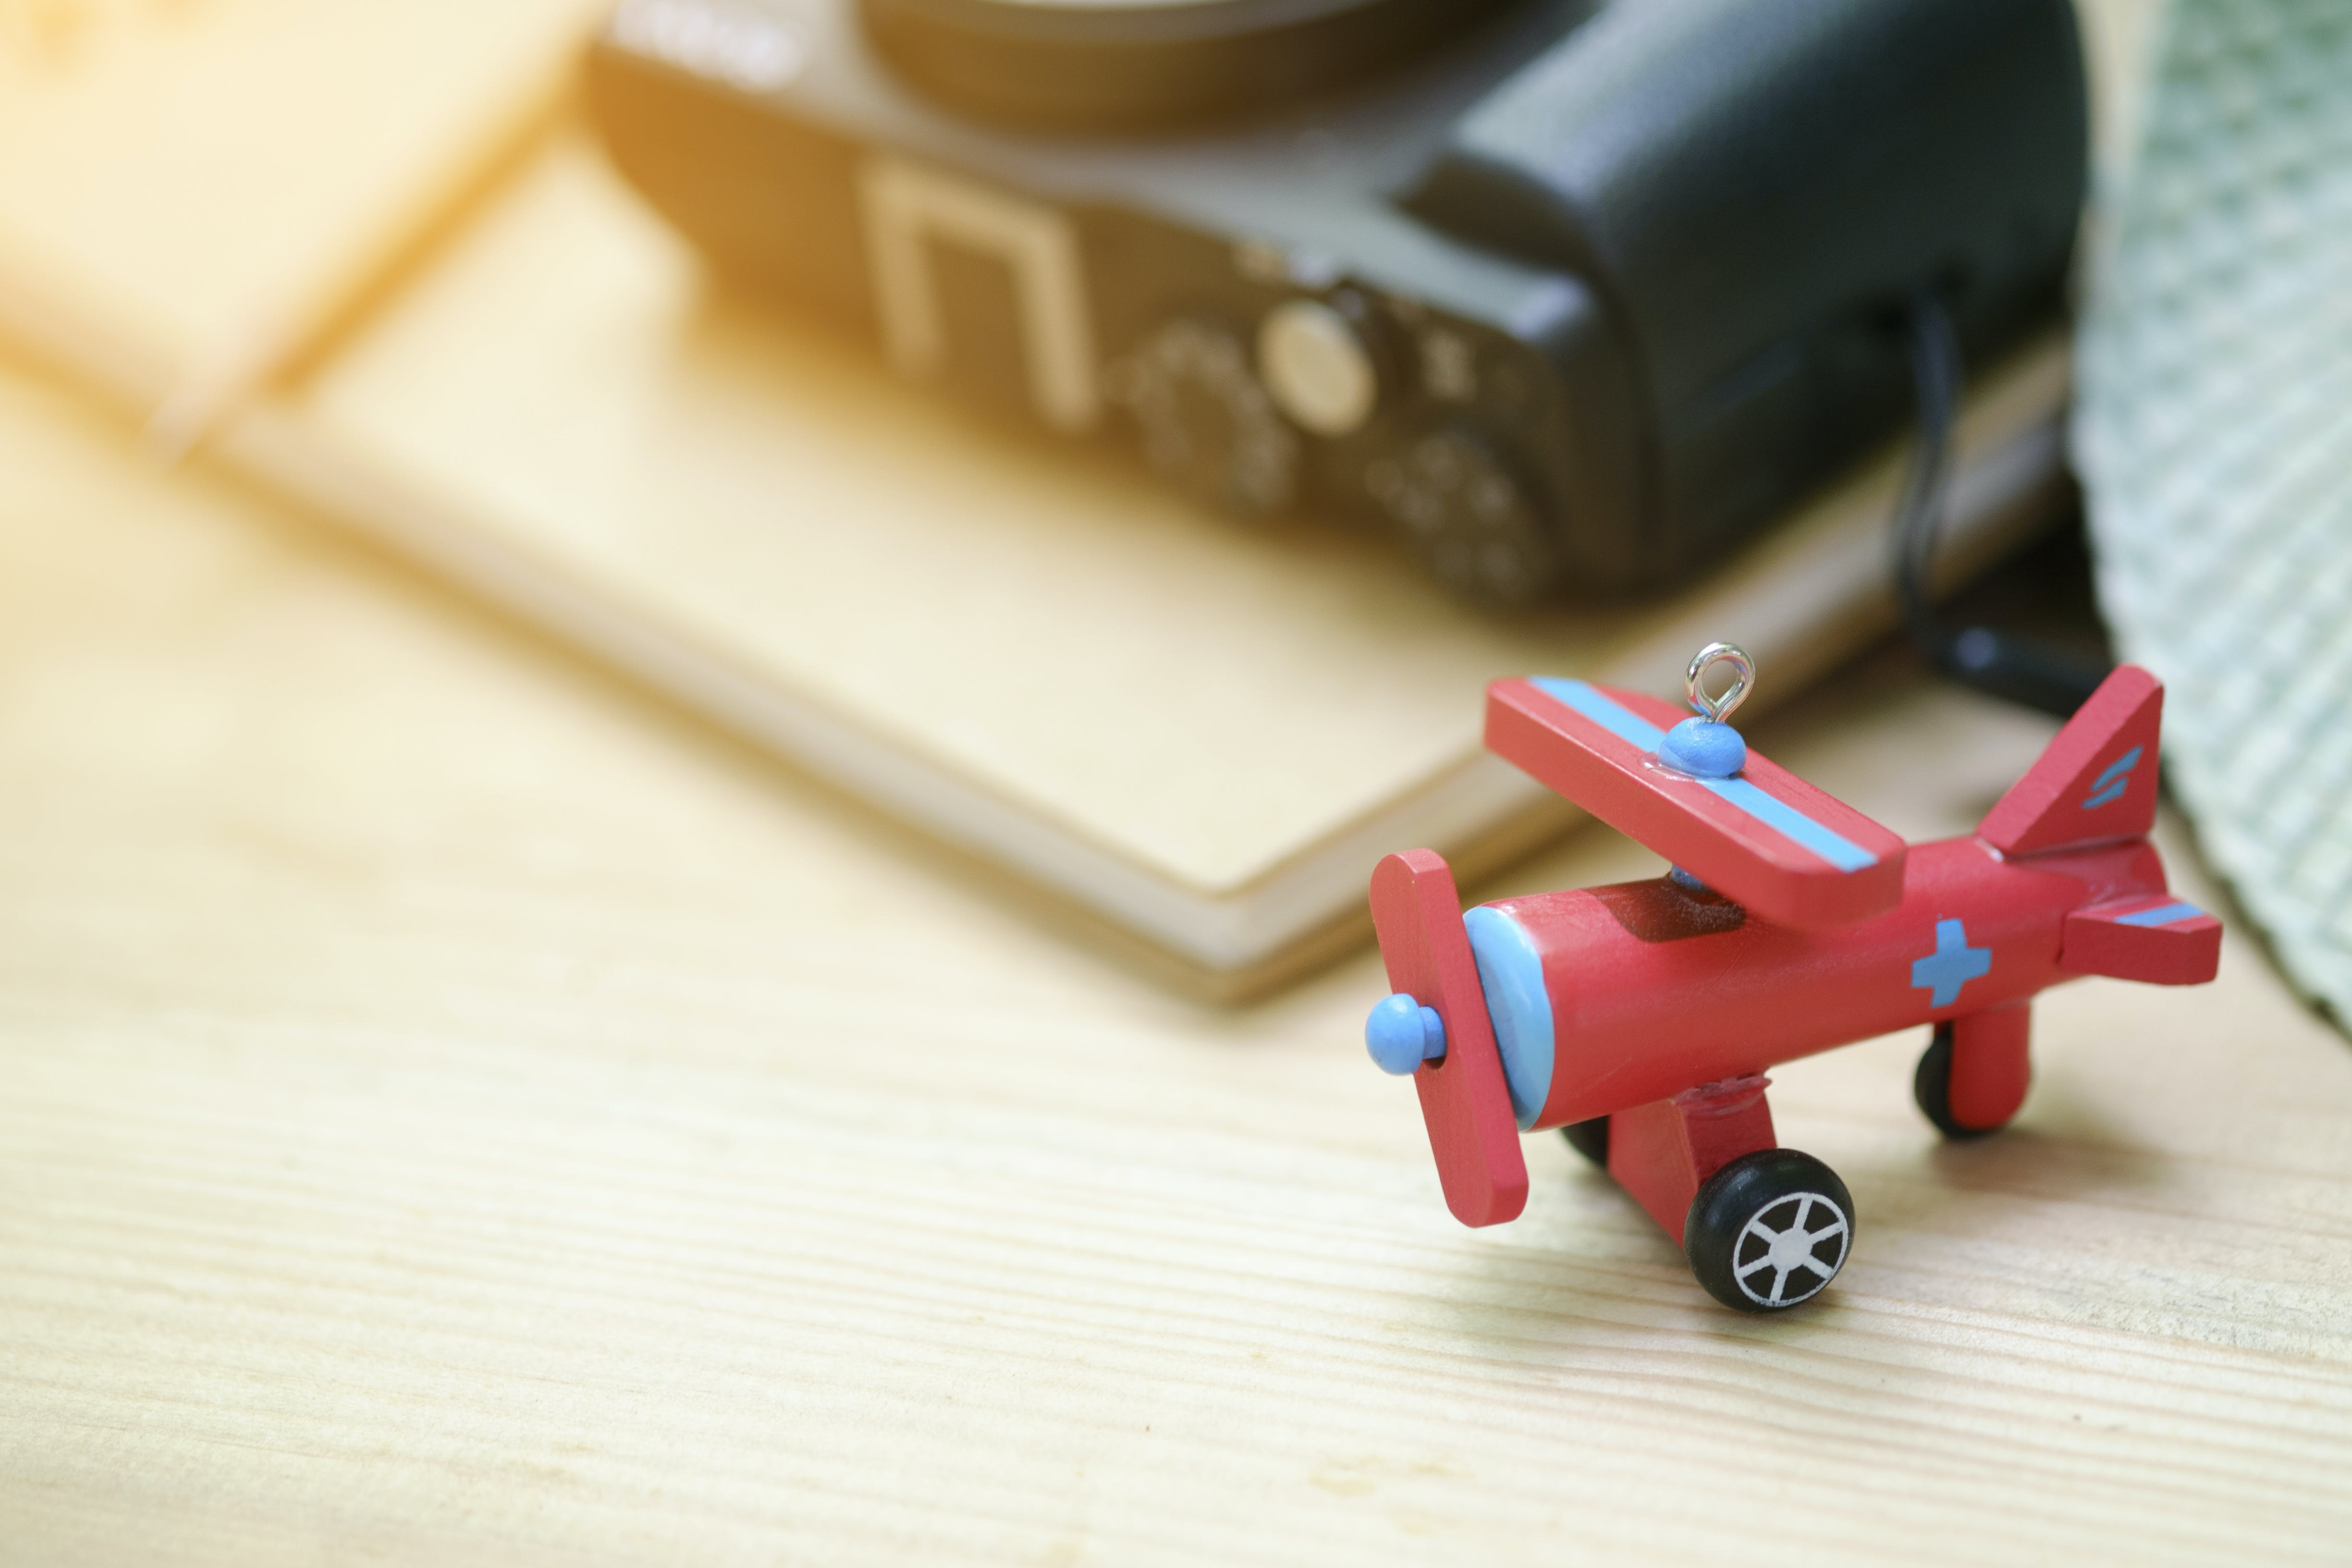 Red Biplane Toy on Wooden Surface